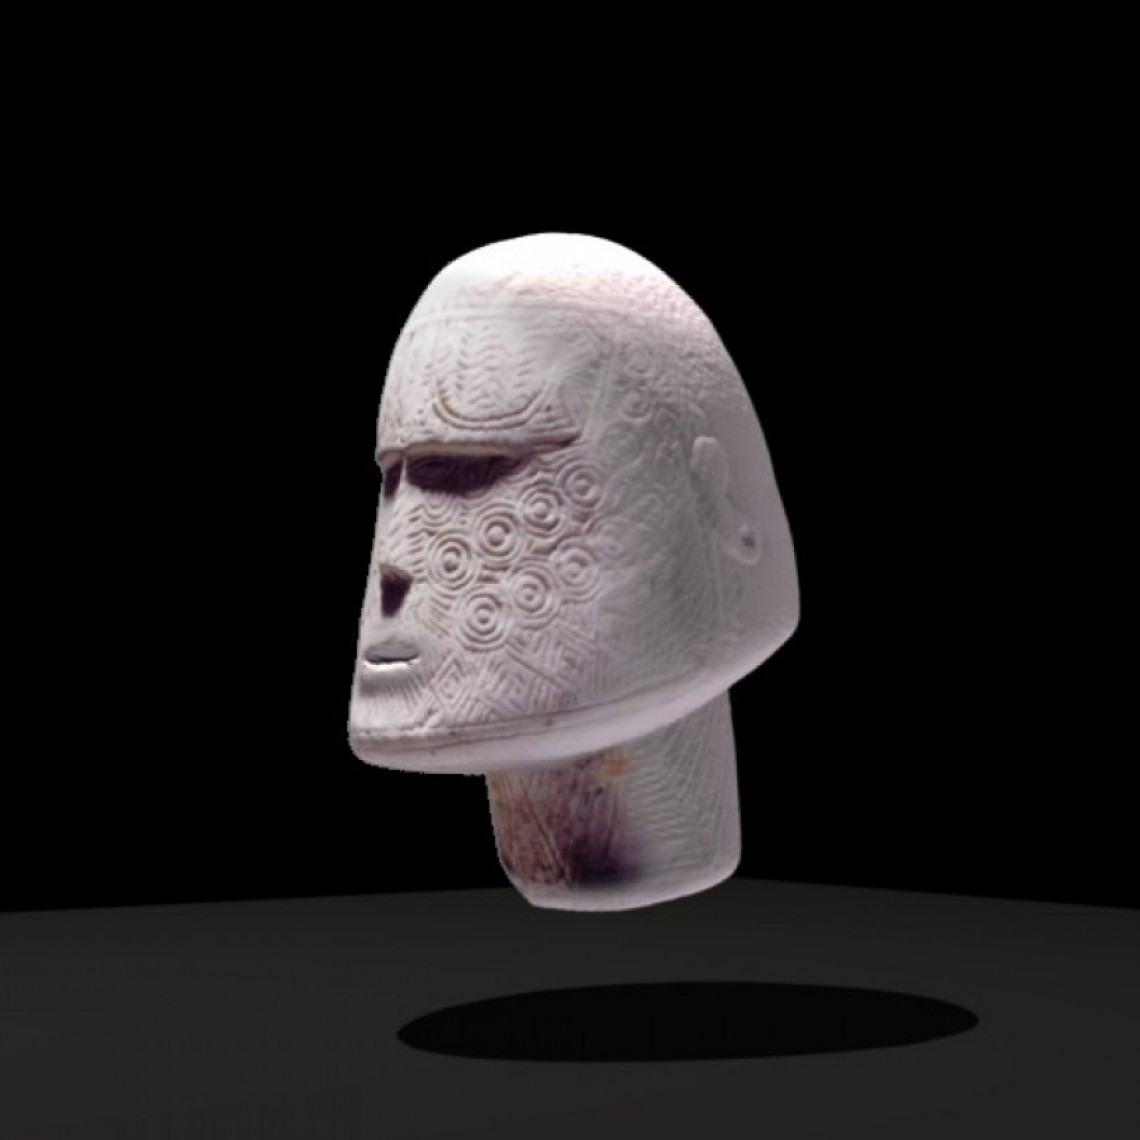 Carved Head visualisation